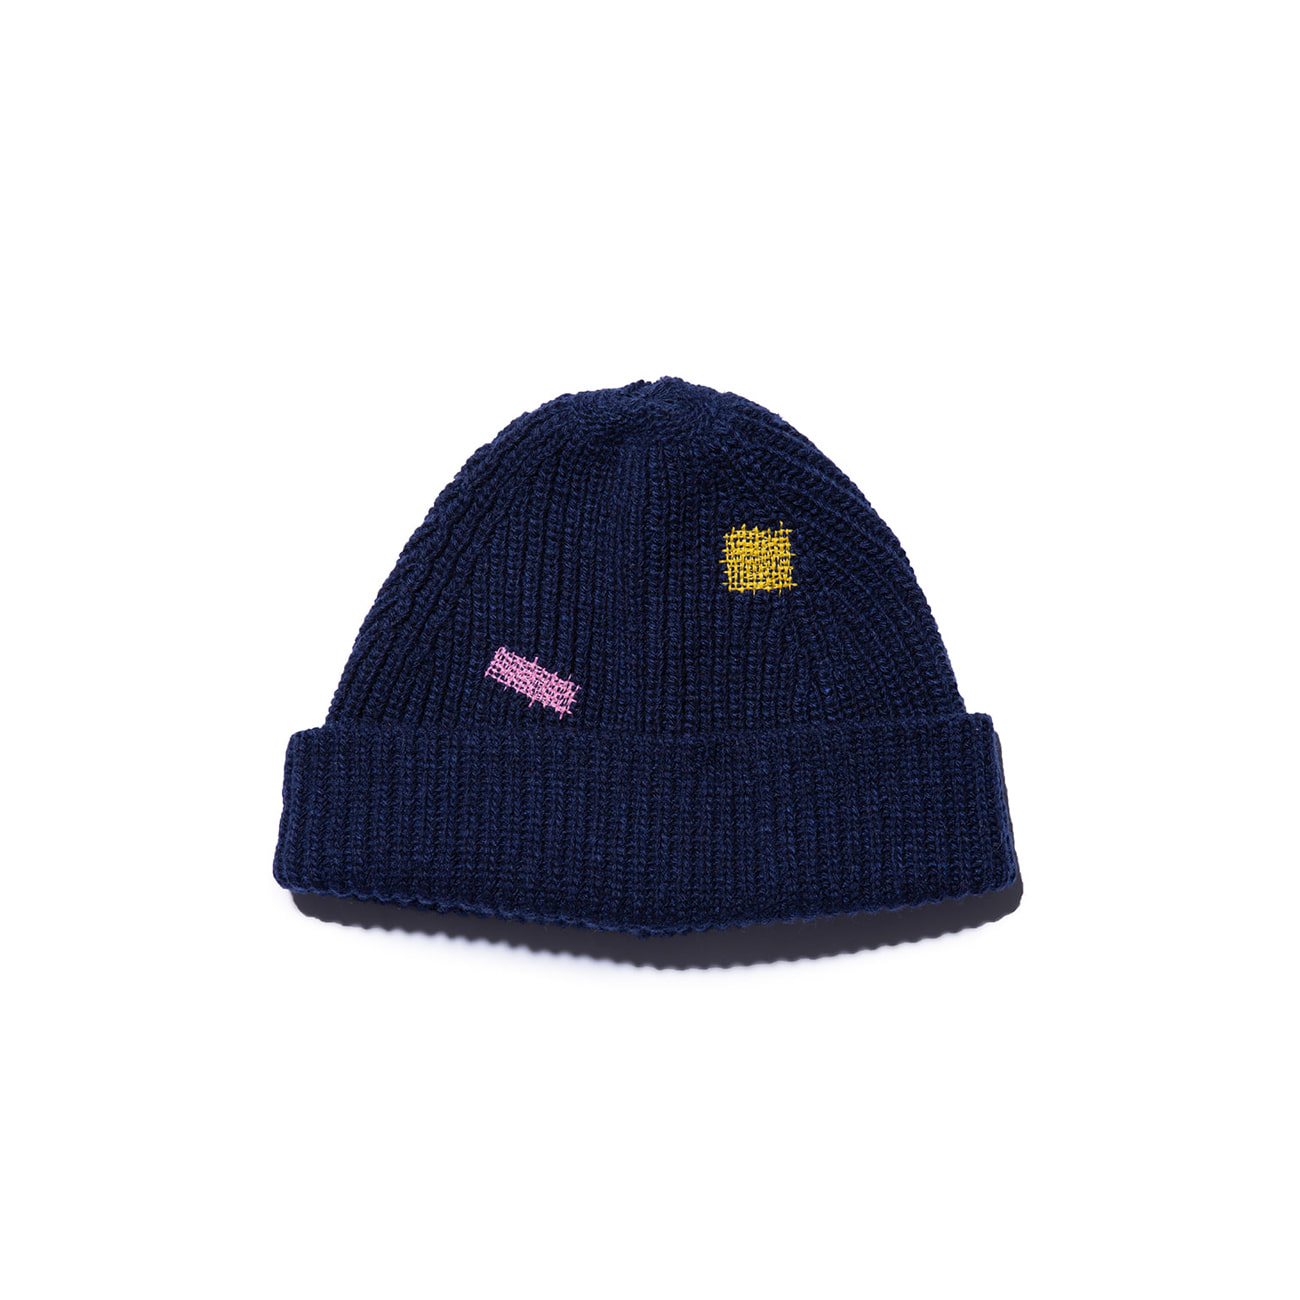 "Vintage Effect Wool Beanie ""NAVY"""